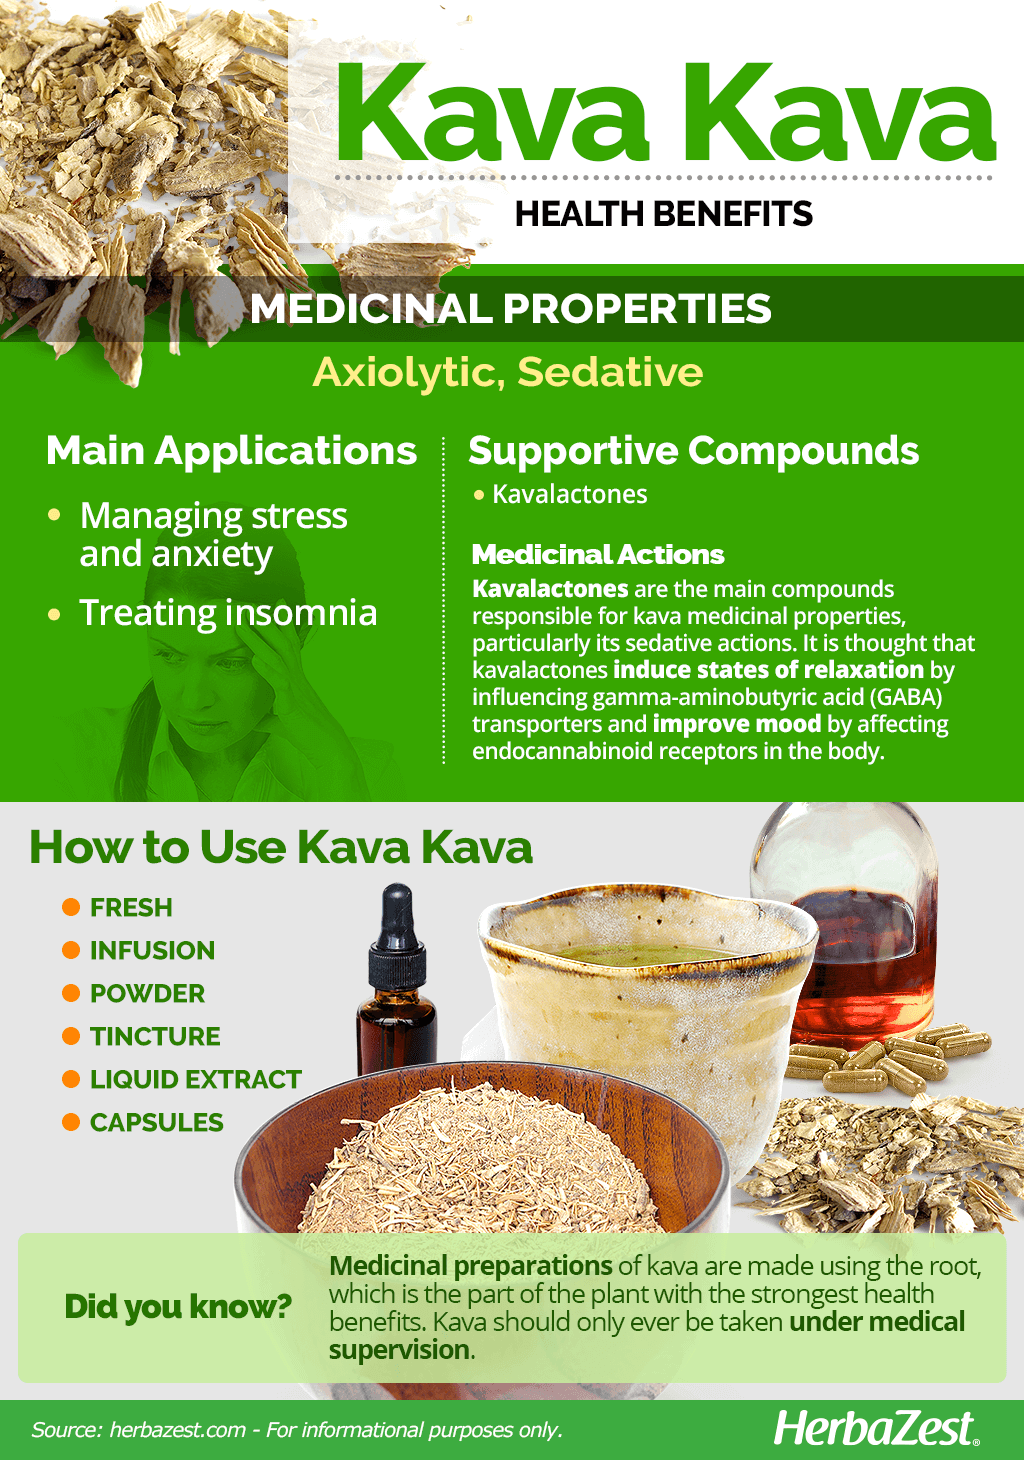 All About Kava Kava